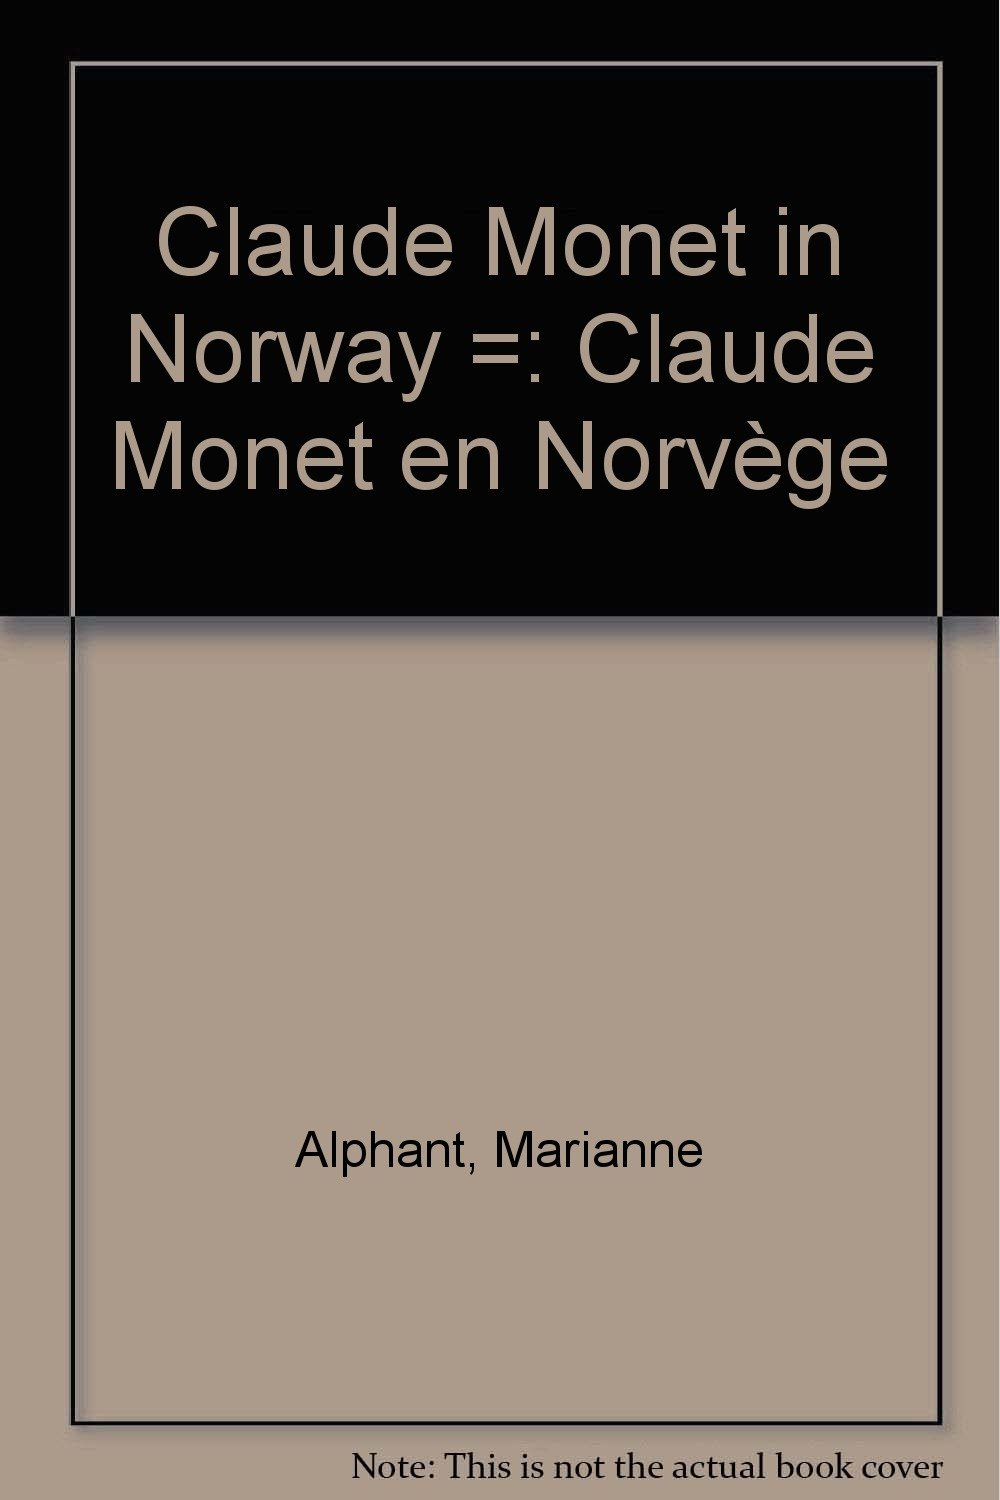 claude monet in norway marianne alphant english translation by maeve de la guardia